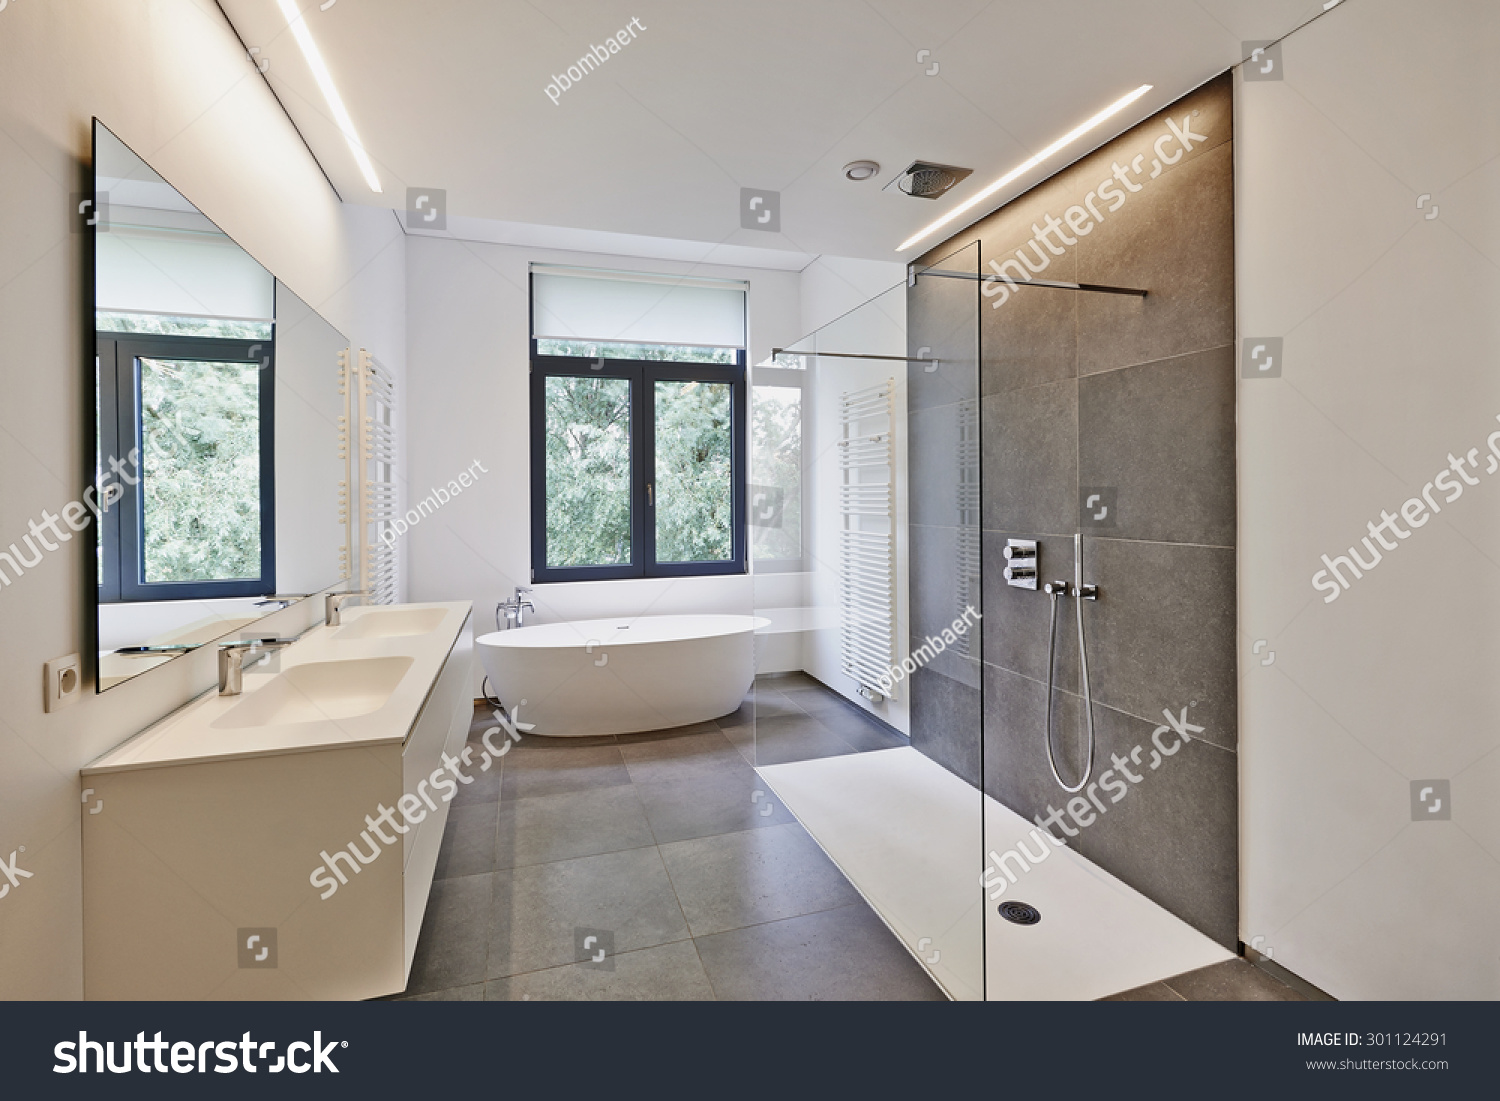 stock-photo-bathtub-in-corian-faucet-and-shower-in-tiled-bathroom-with-windows-towards-garden-301124291